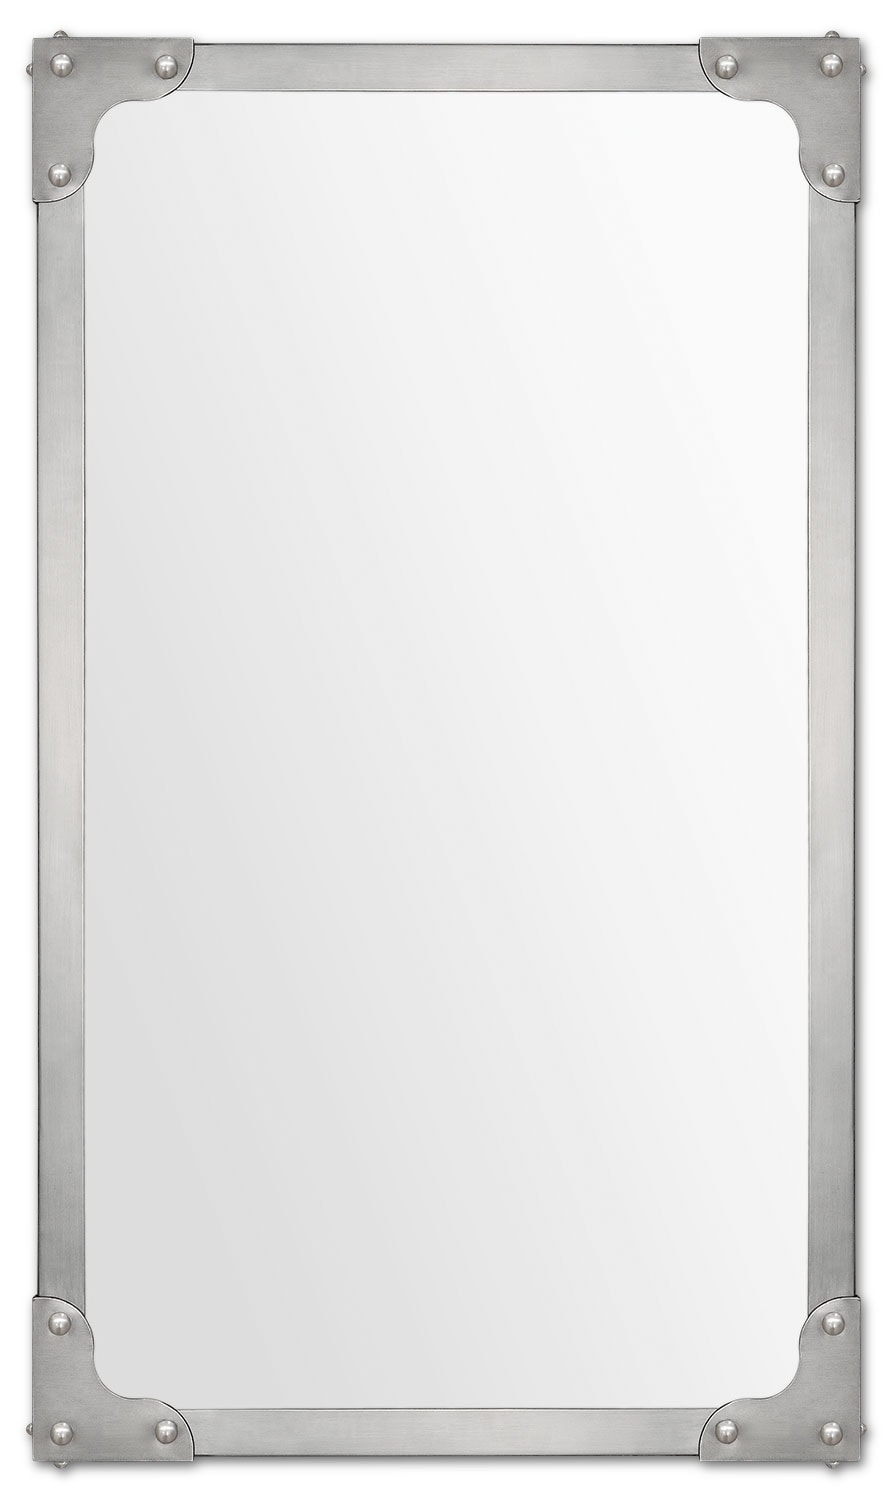 Home Accessories - Tia Mirror